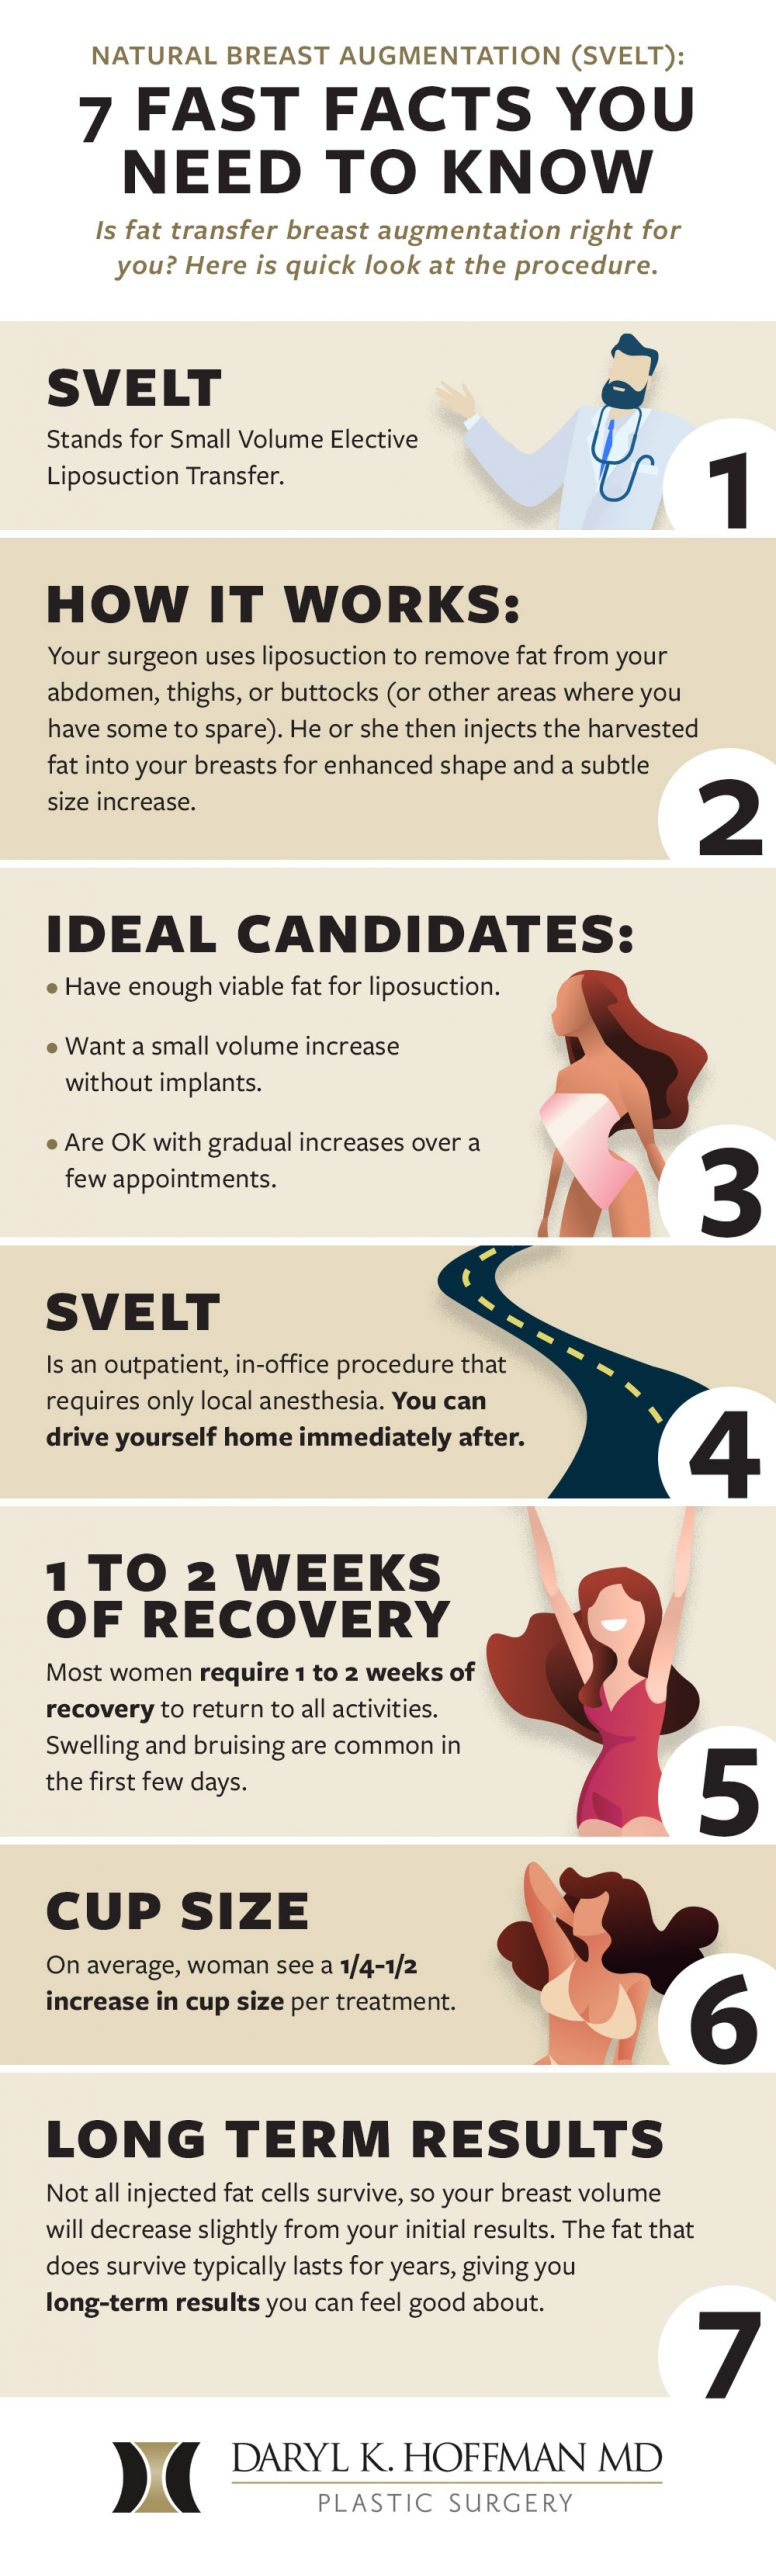 Infographic covering 7 natural breast augmentation (SVELT) facts